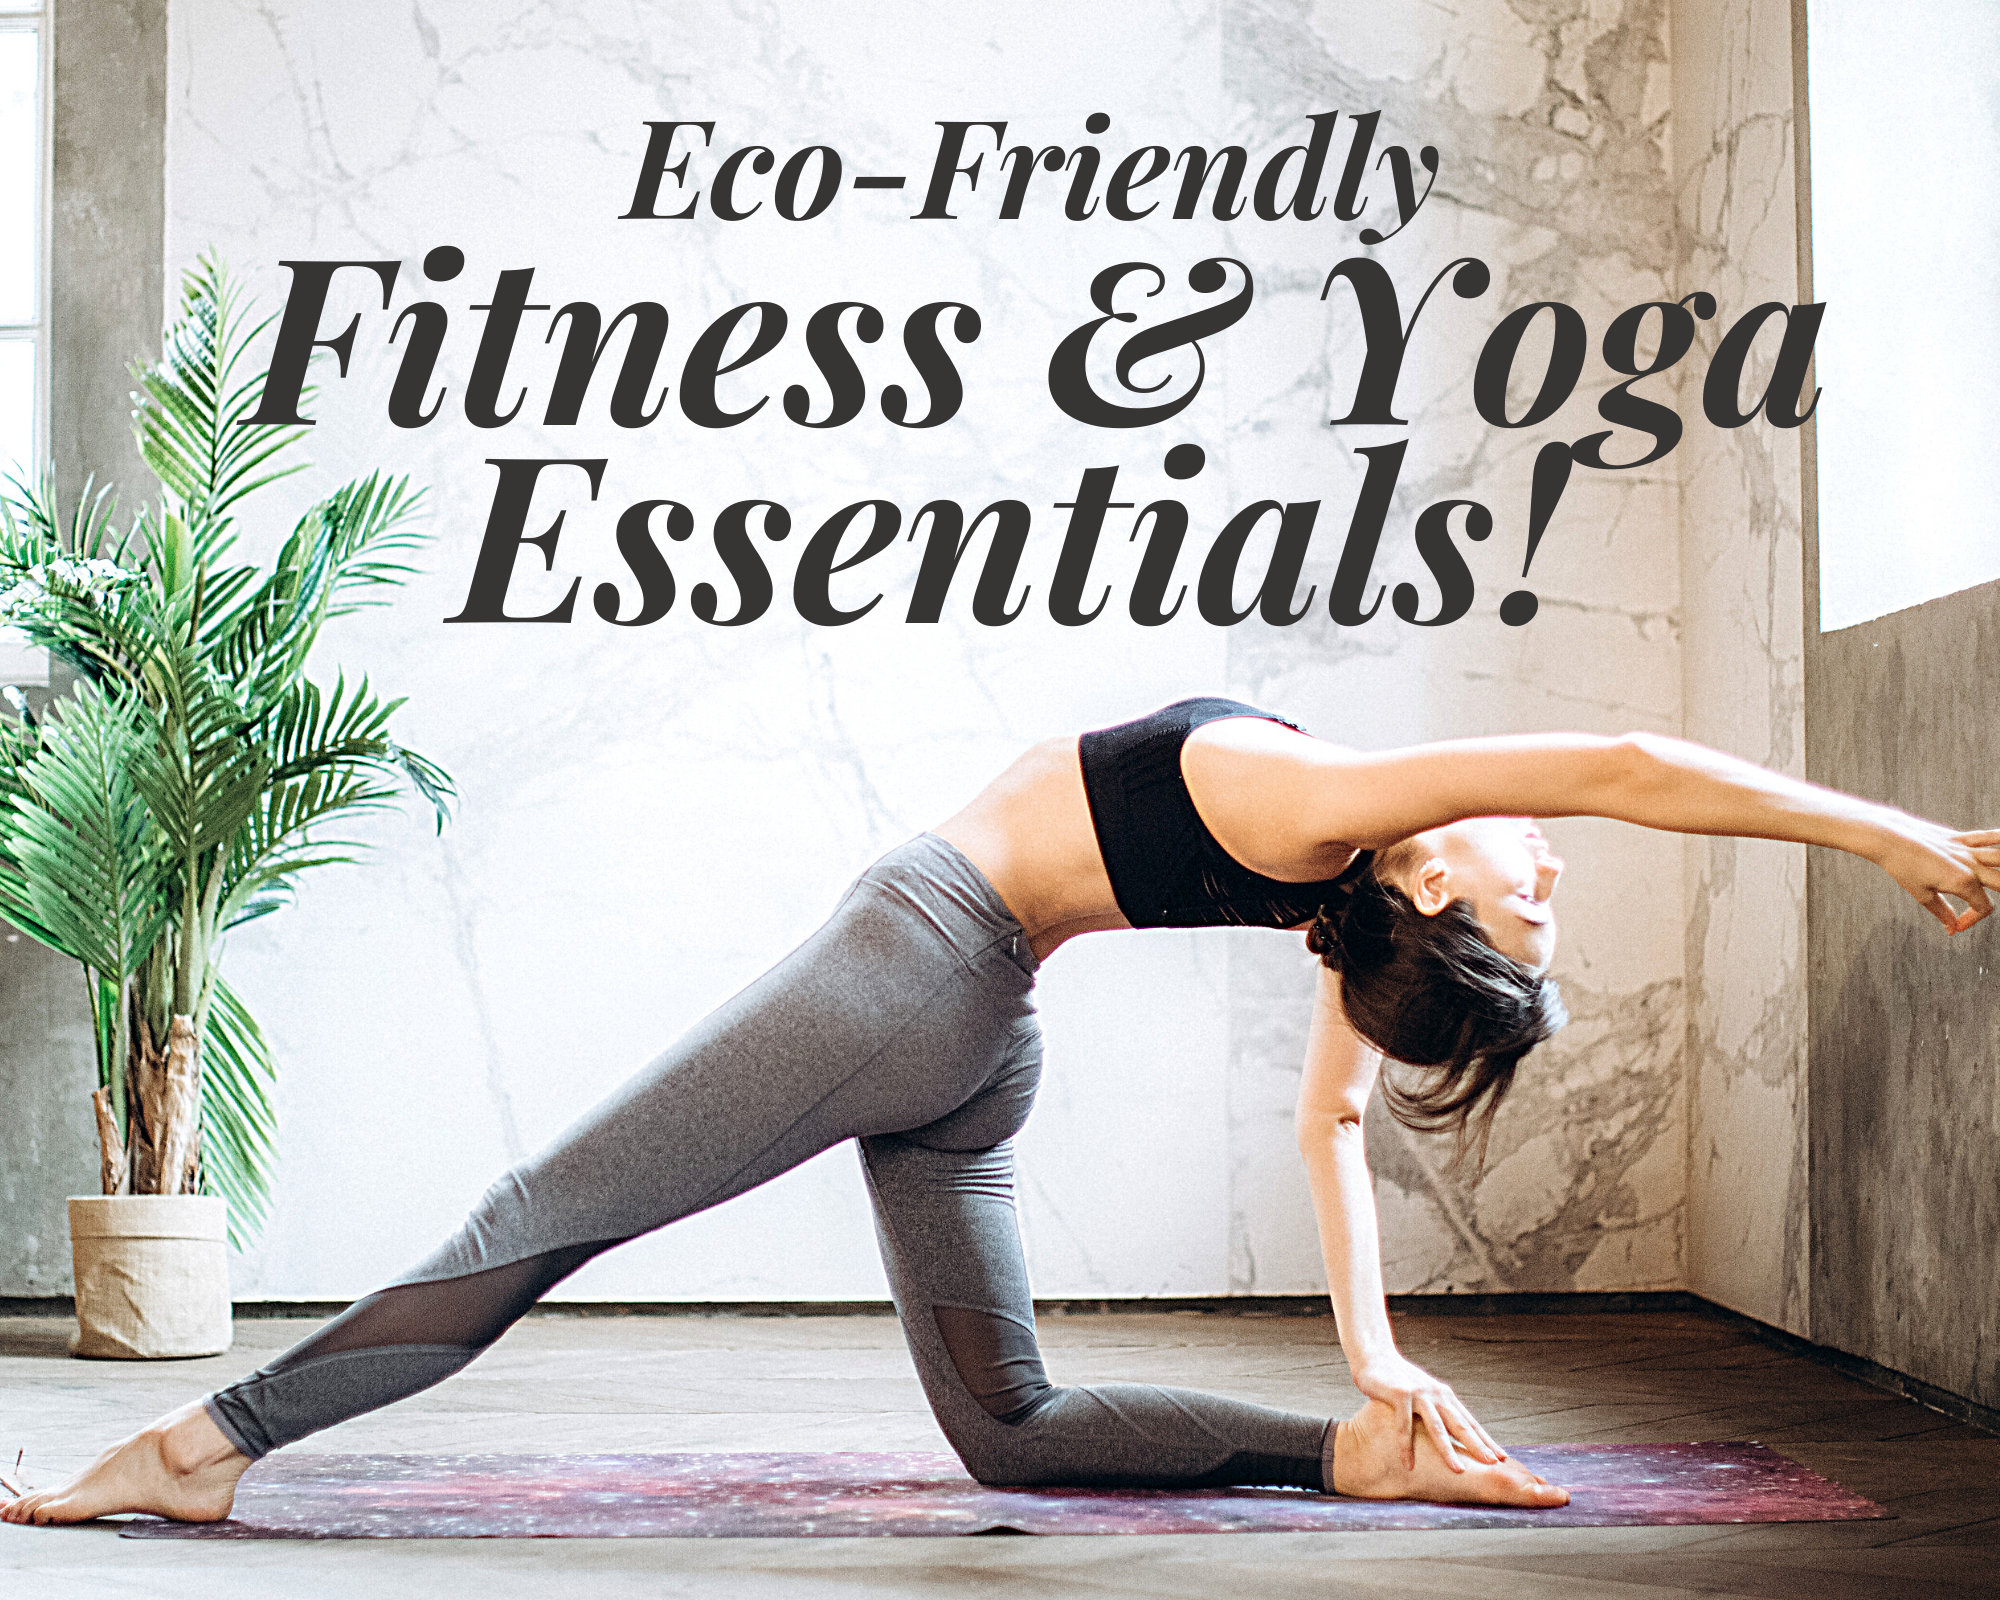 ecofriendly yoga and fitness essentials nontoxic natural